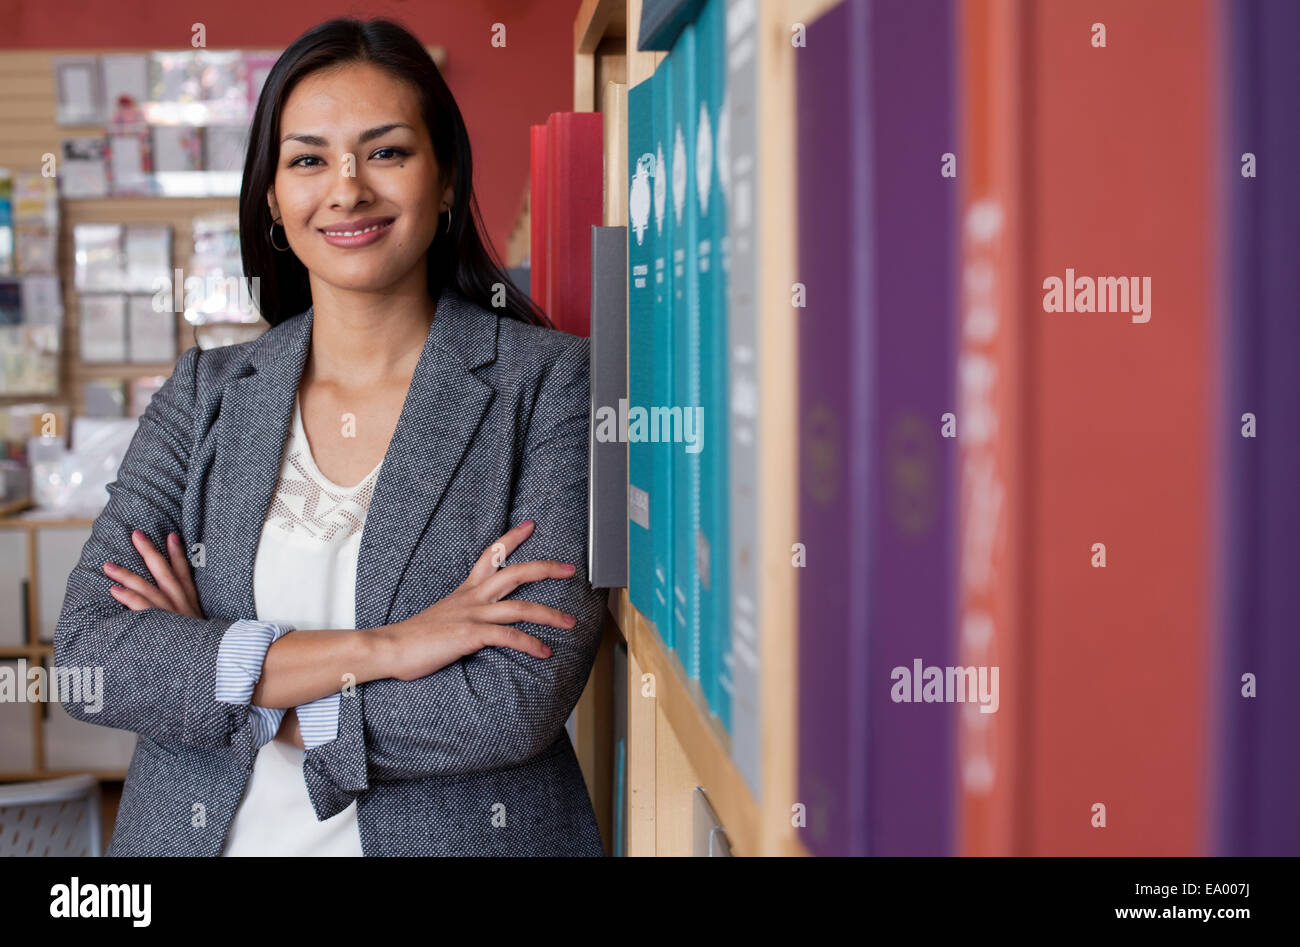 portrait of young female s assistant in stationery shop stock portrait of young female s assistant in stationery shop